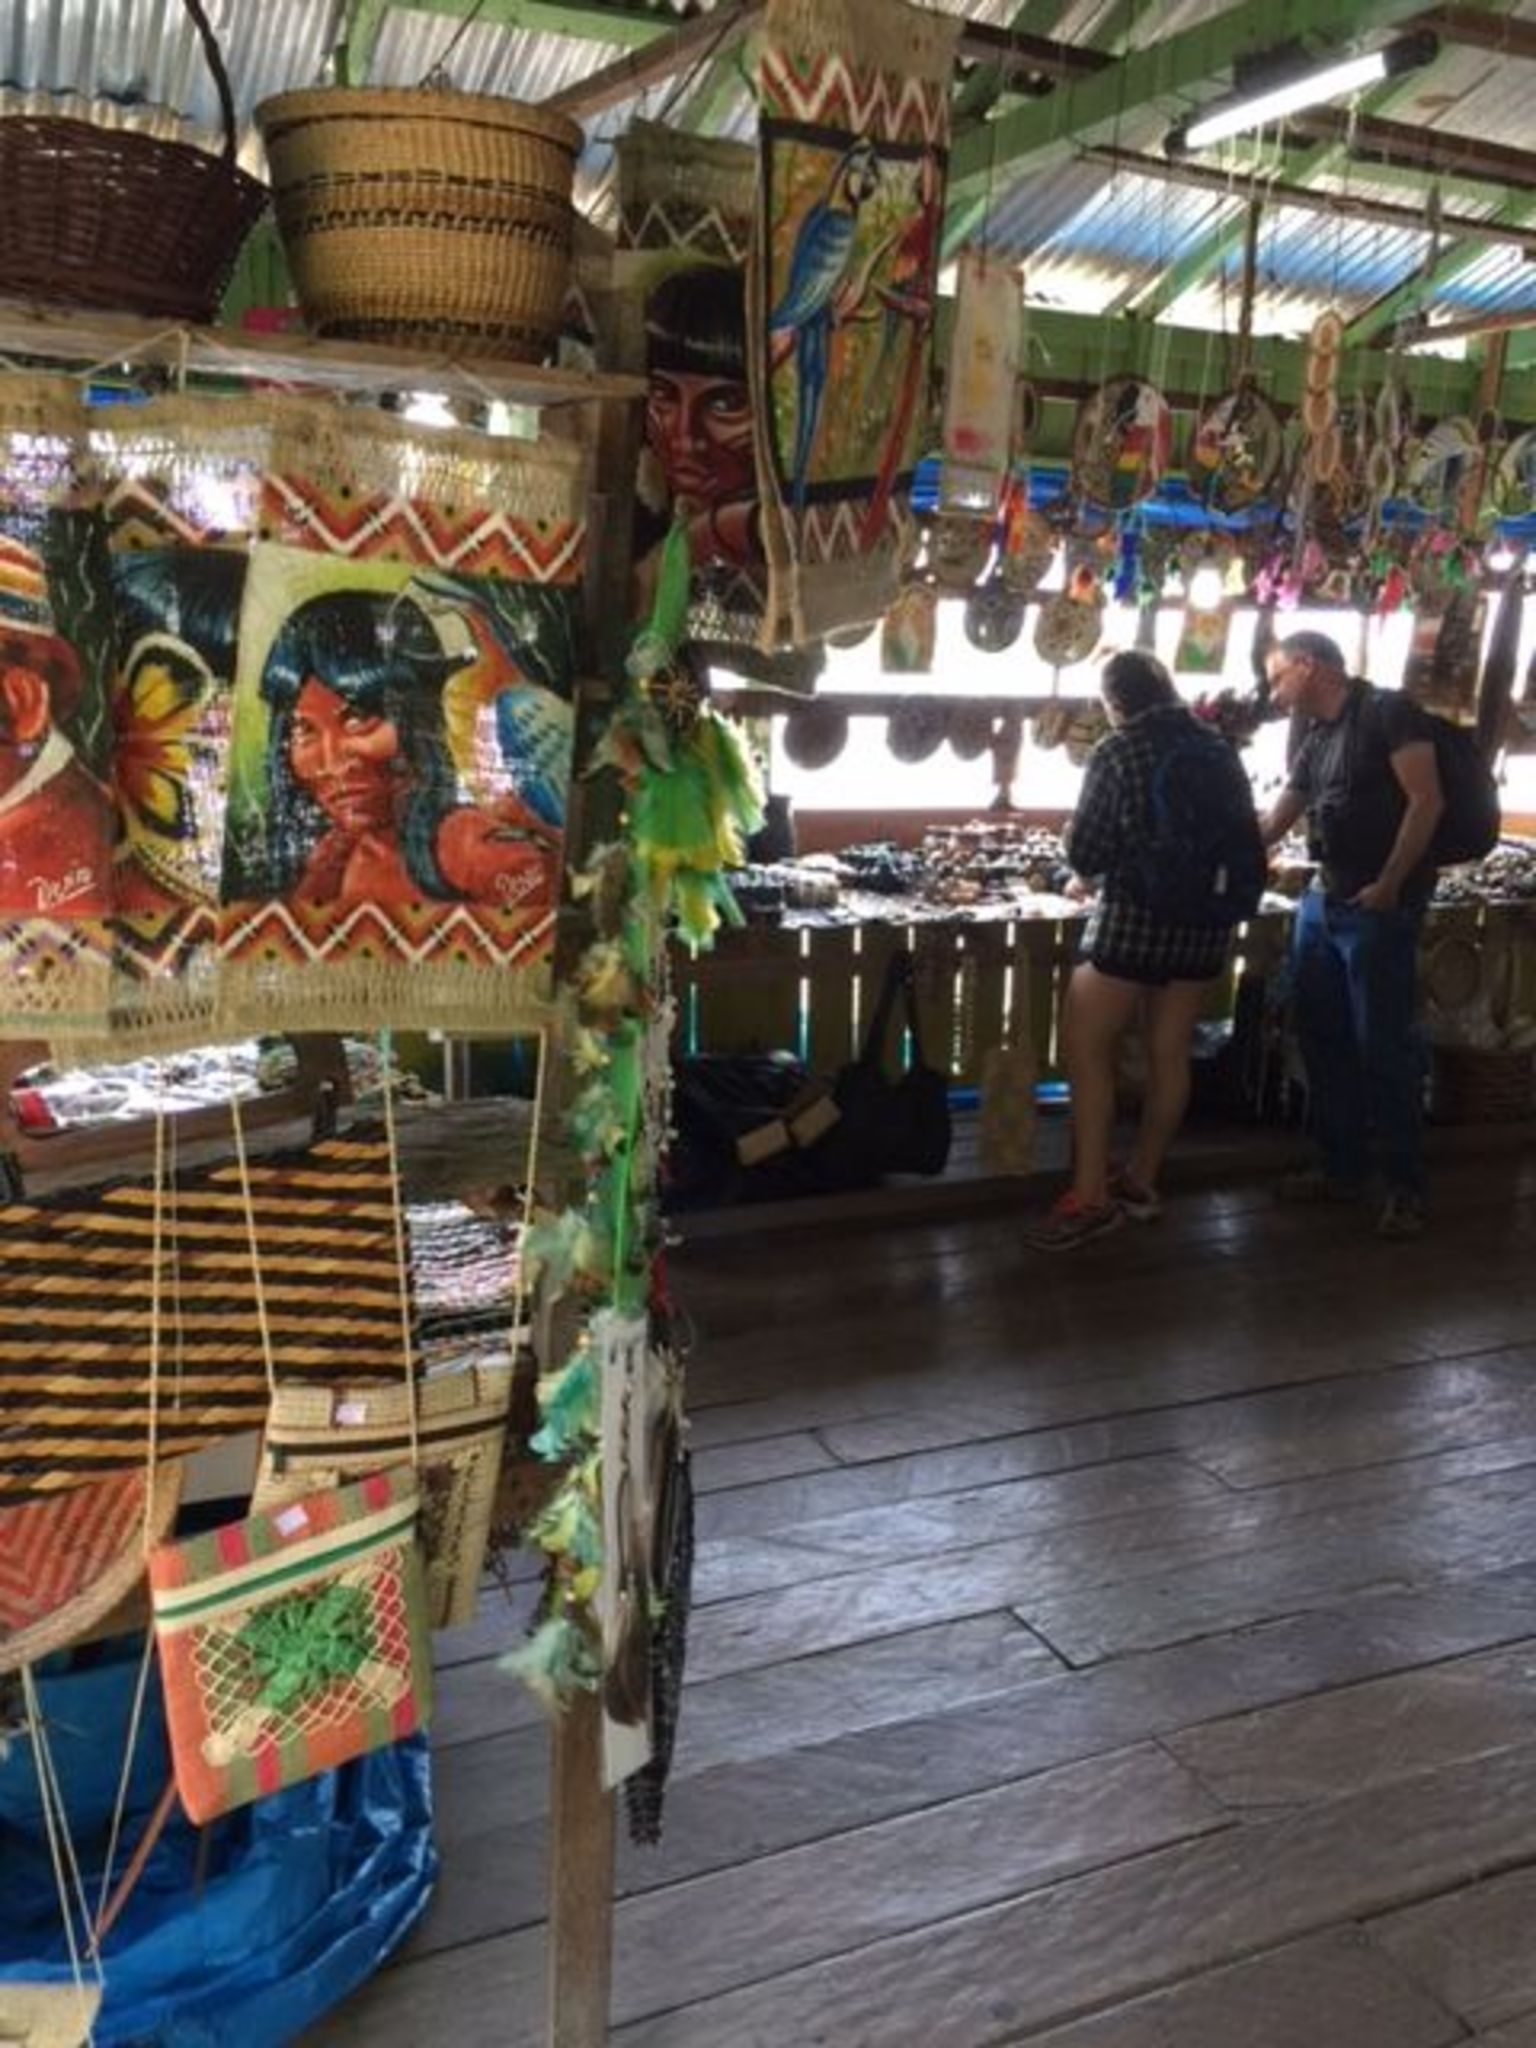 Rio Negro Cruise from Manaus to the Amazon River